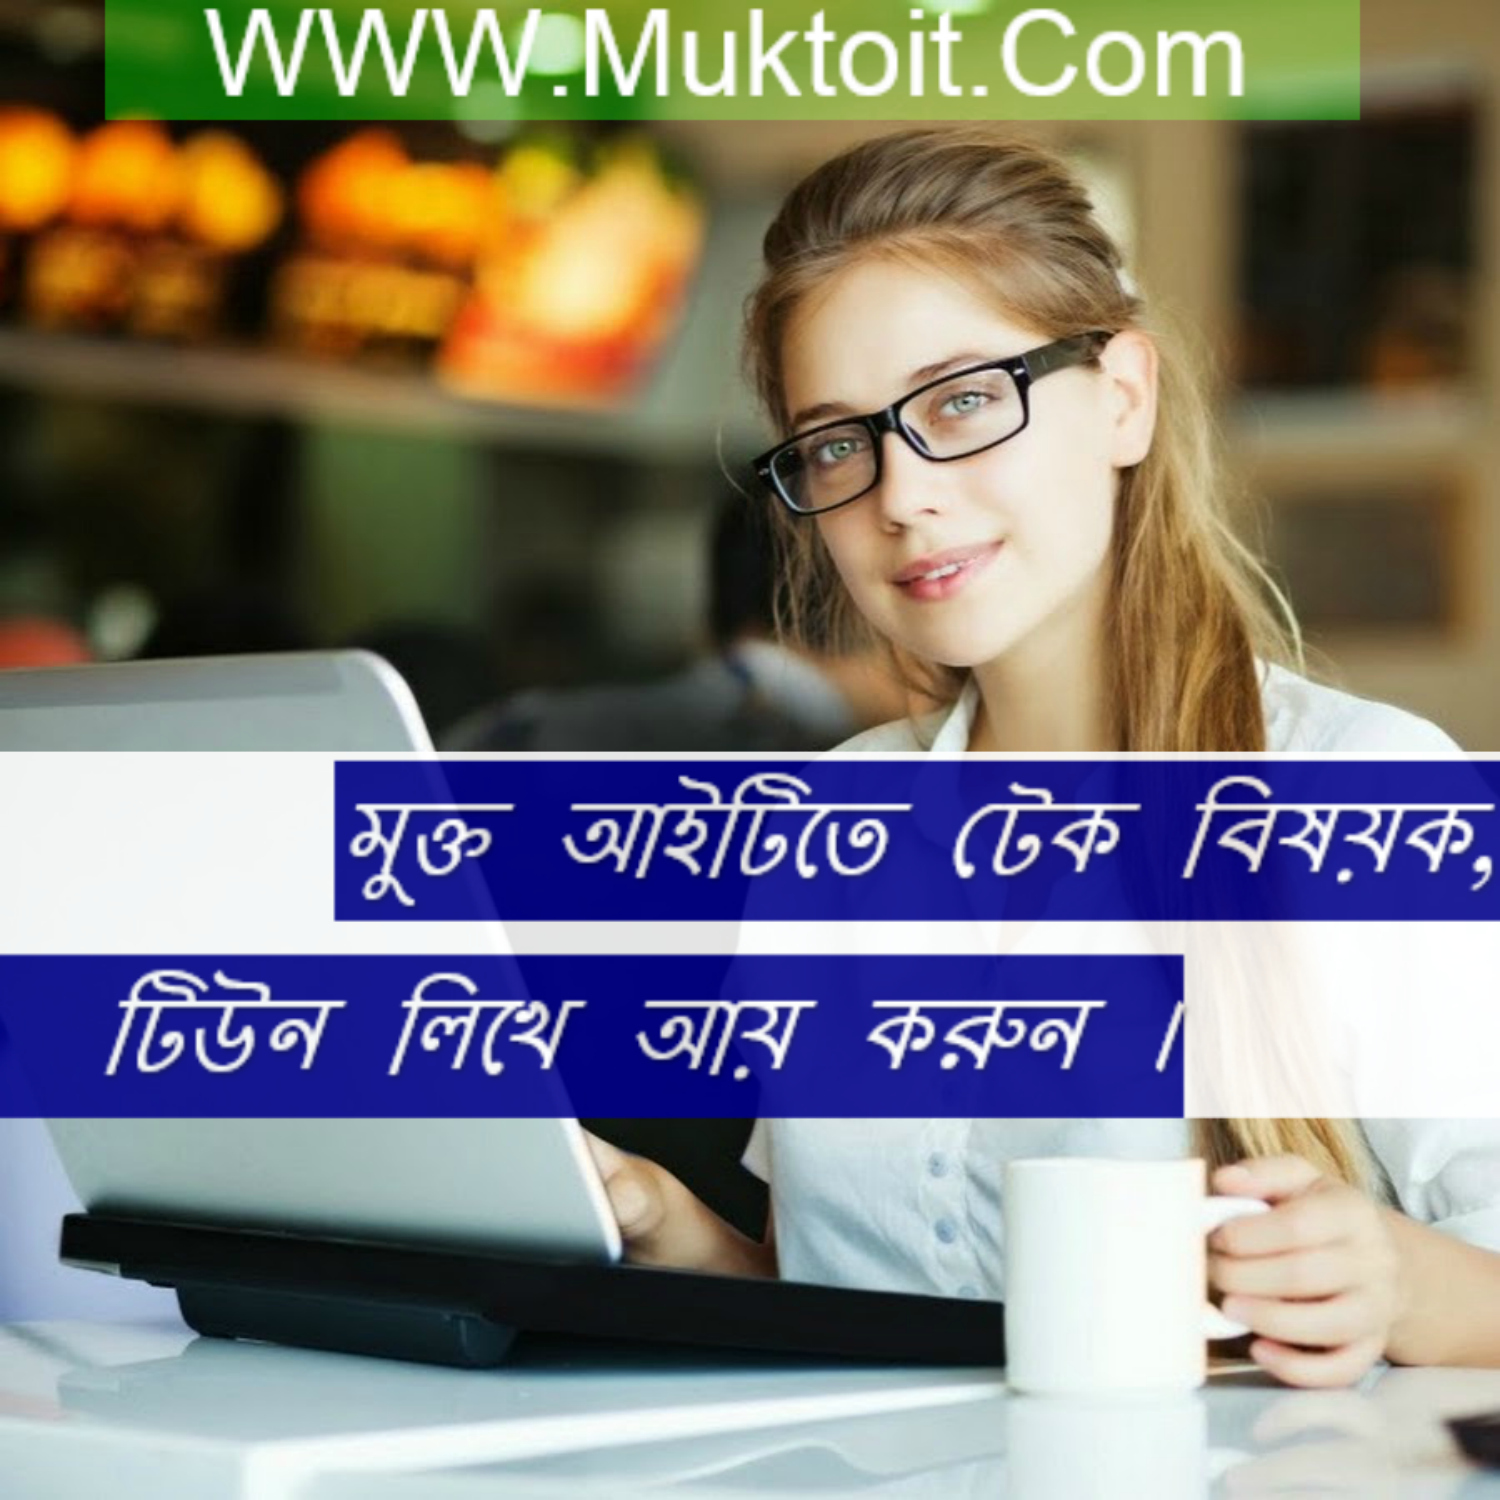 earn money by writting bangla Article Muktoit